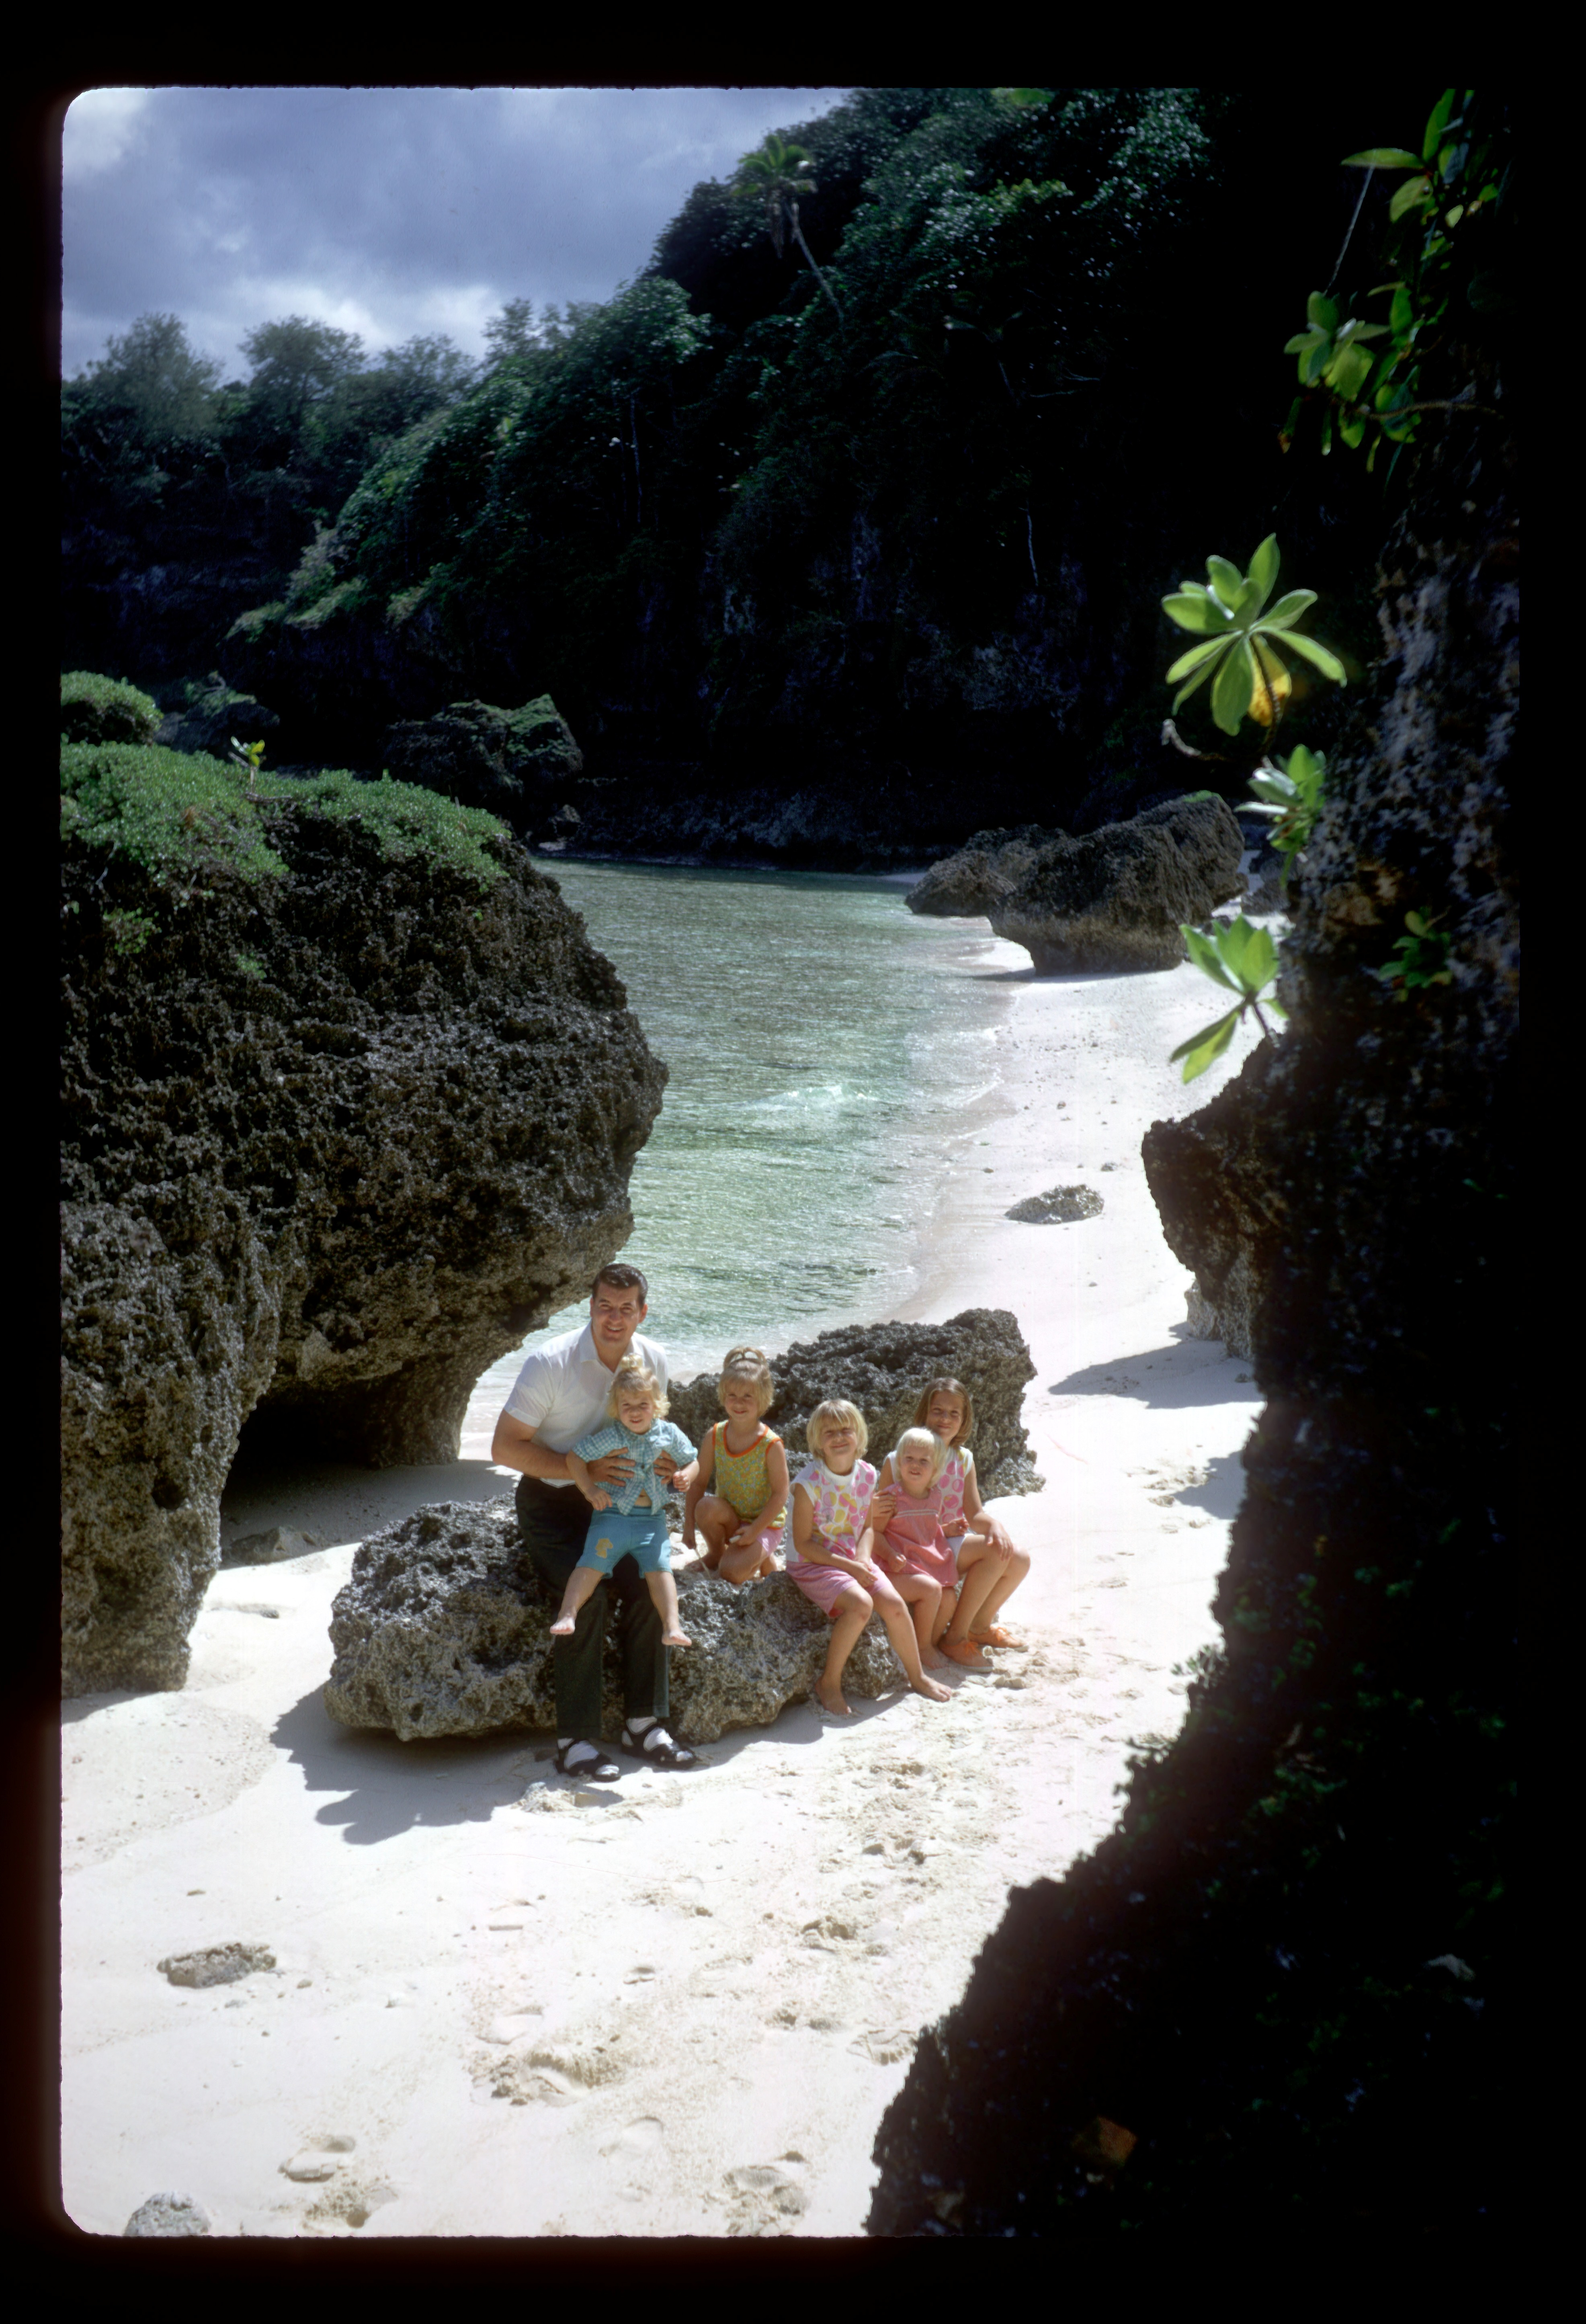 Elder John Groberg poses with some of his children on the beach in Hufanga Lupe, Tonga in August 1968.